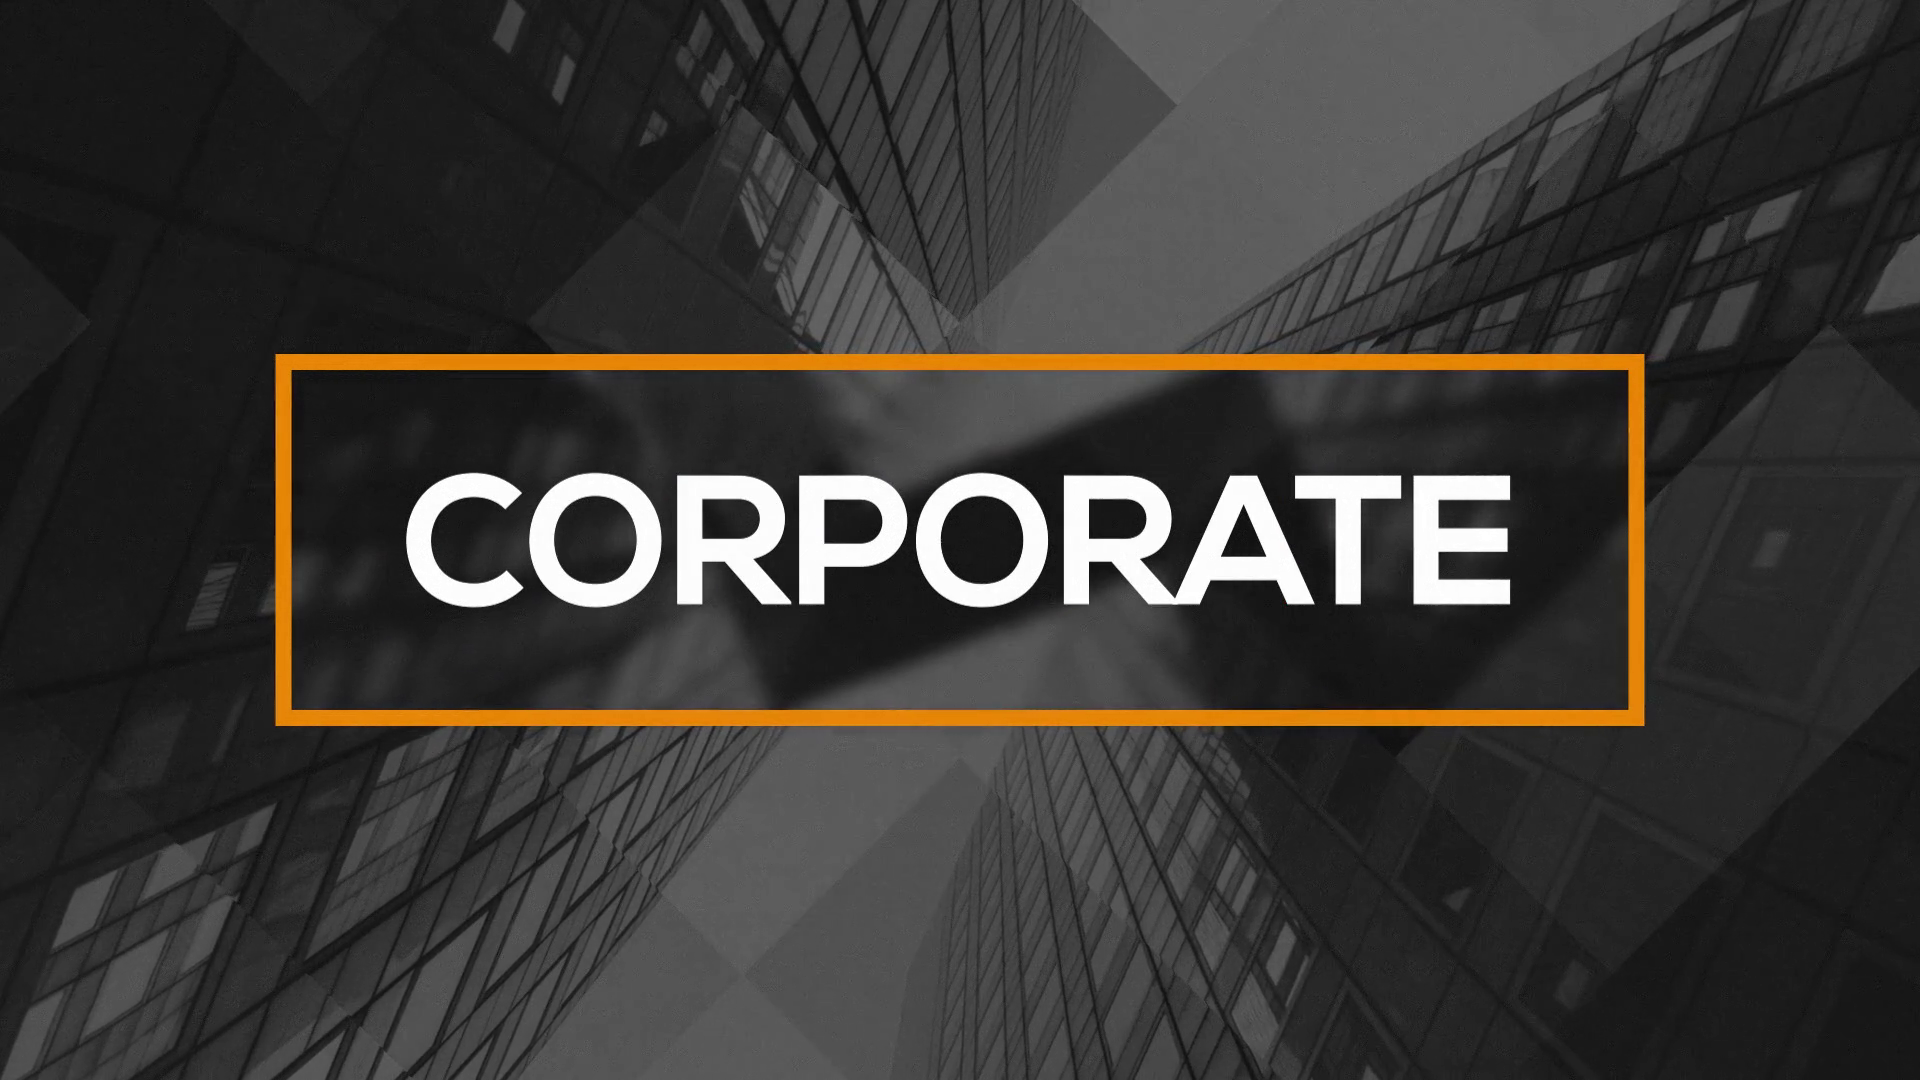 Modern Corporate Presentation Royalty Free Stock Video And Stock